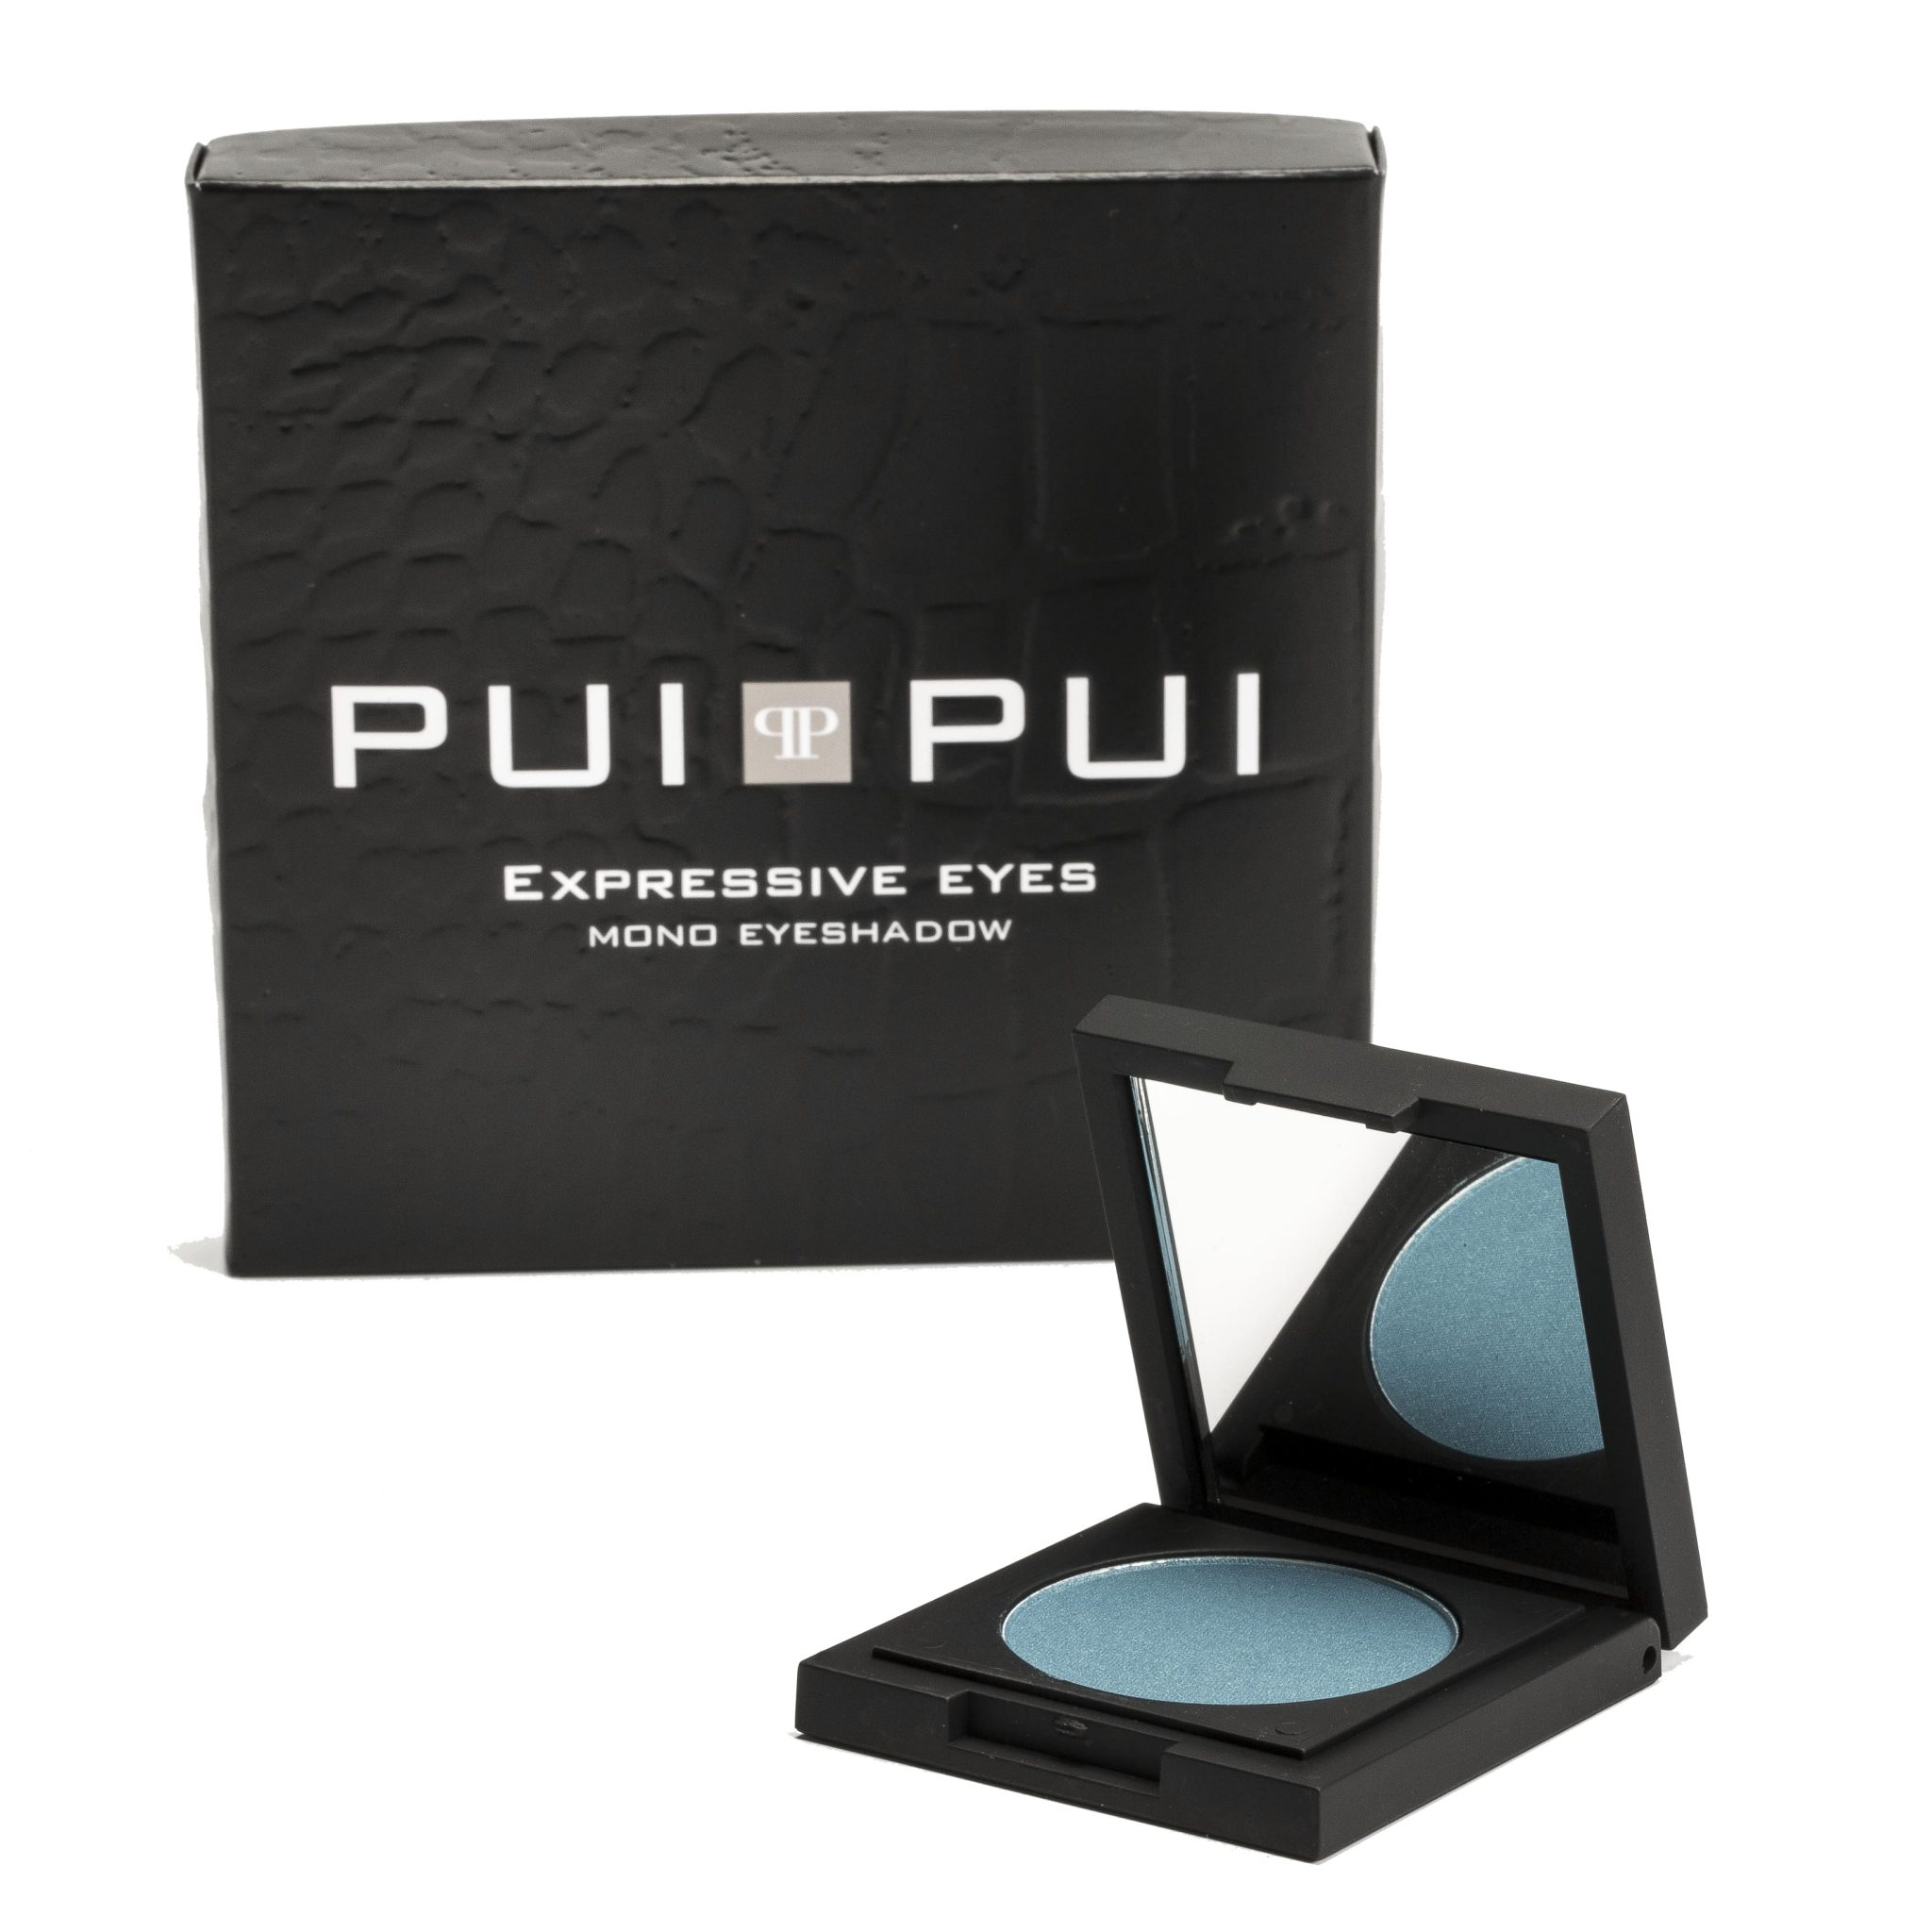 26004 expressive eyes mono eyeshadow - vrij